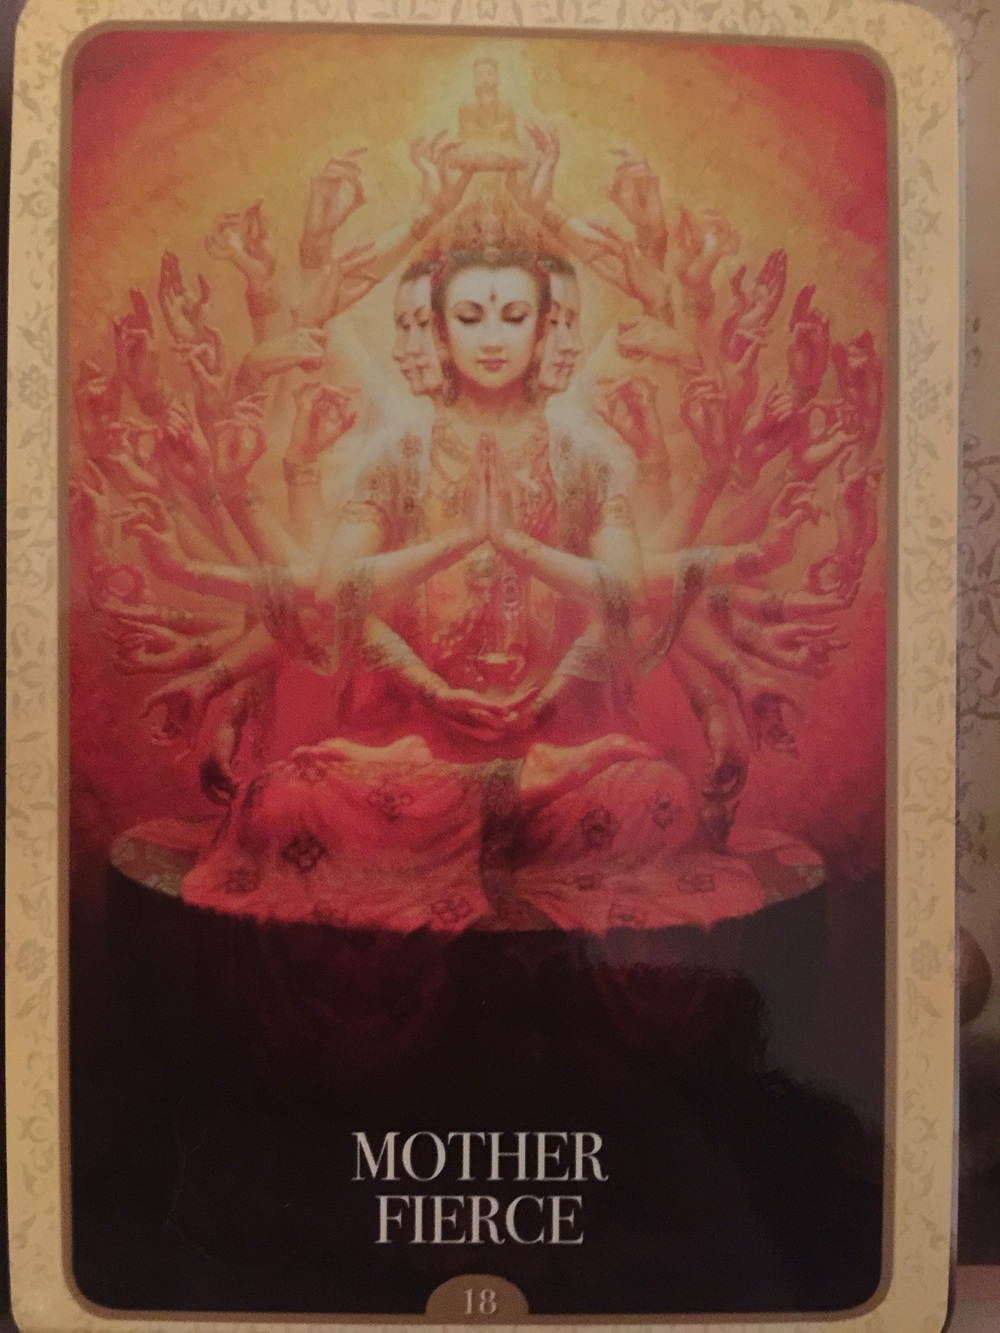 Deck Used: Kwan Yin Oracle